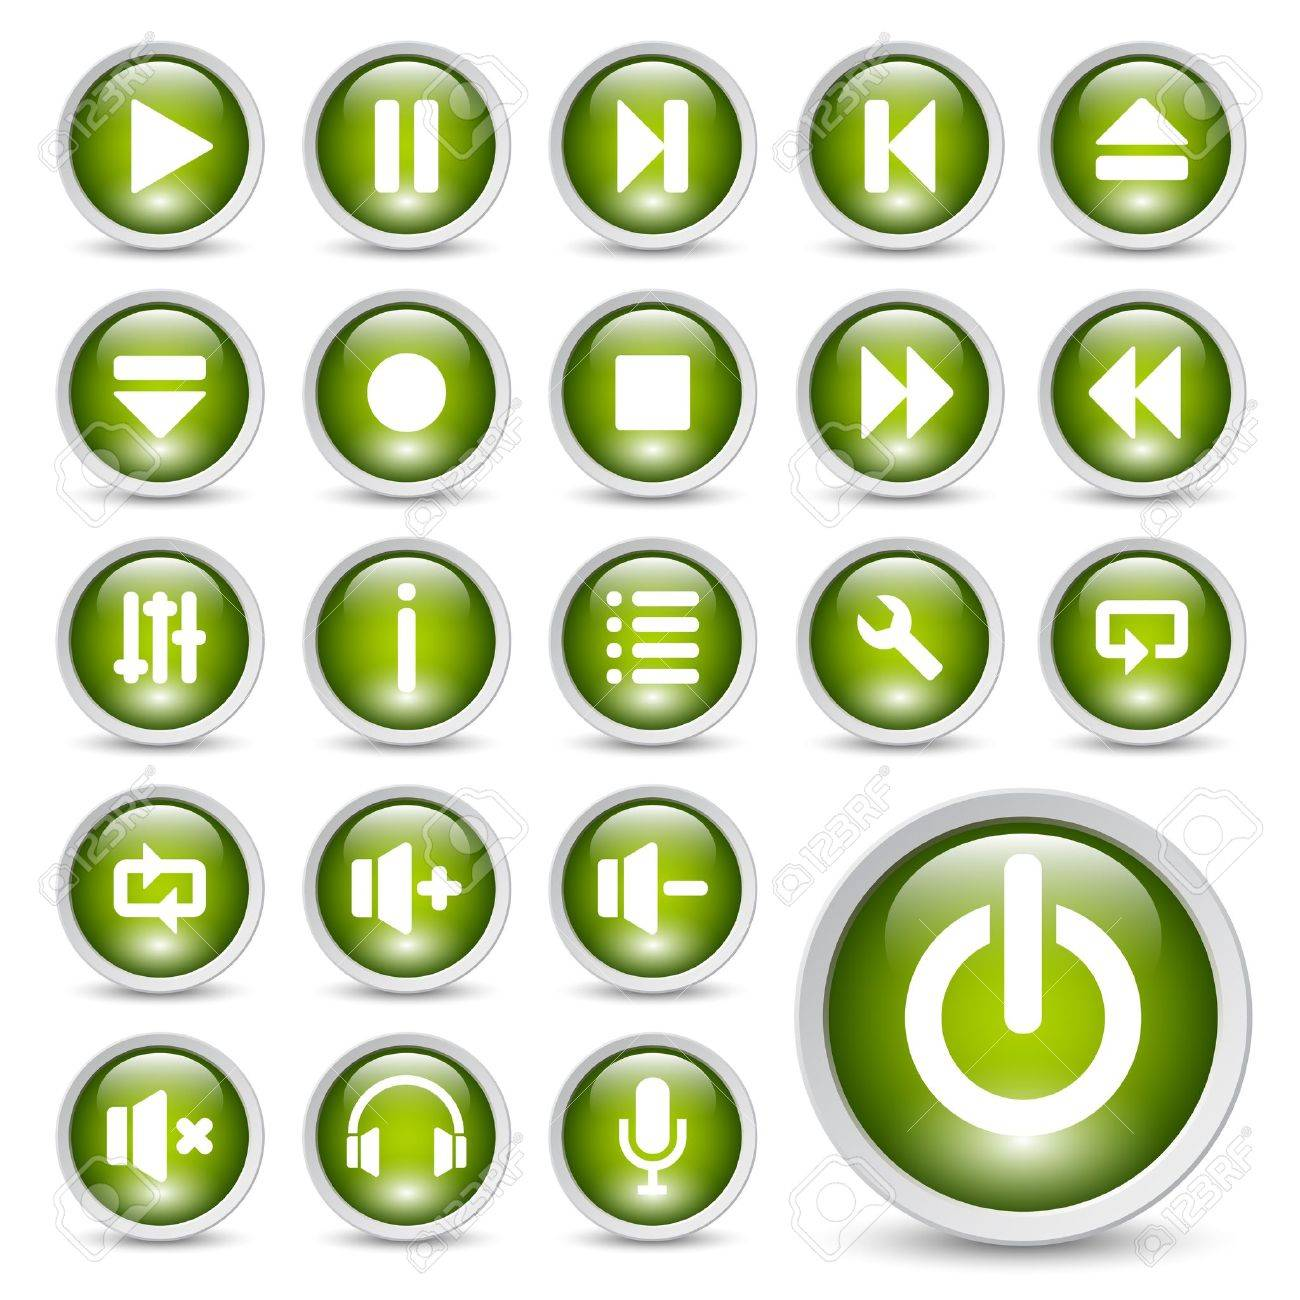 Classic media player buttons icon set. Stock Vector - 10555313